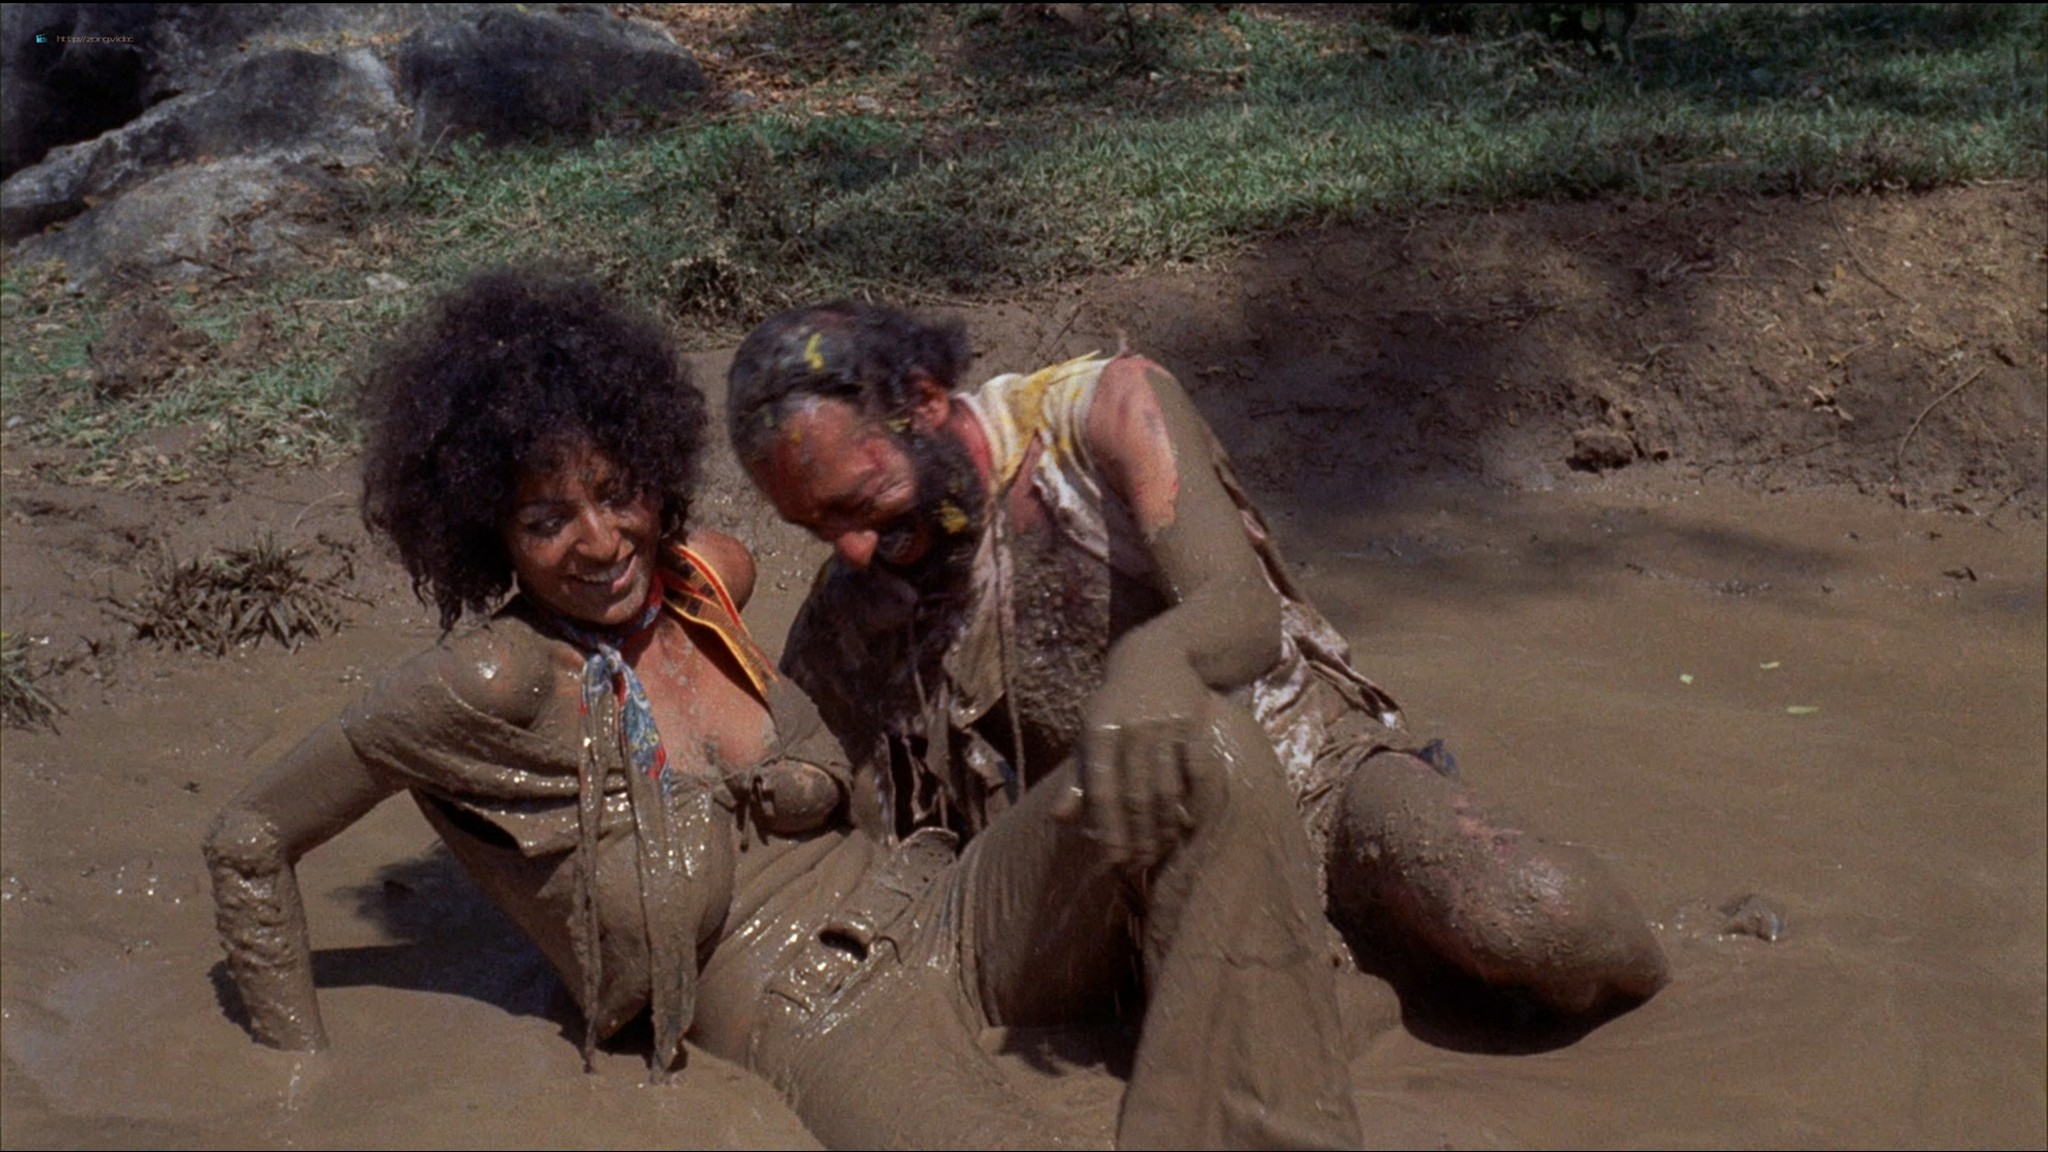 Pam Grier nude Anita Ford nude bush, others nude - The Big Bird Cage (1972) HD 1080p BluRay(r) (15)